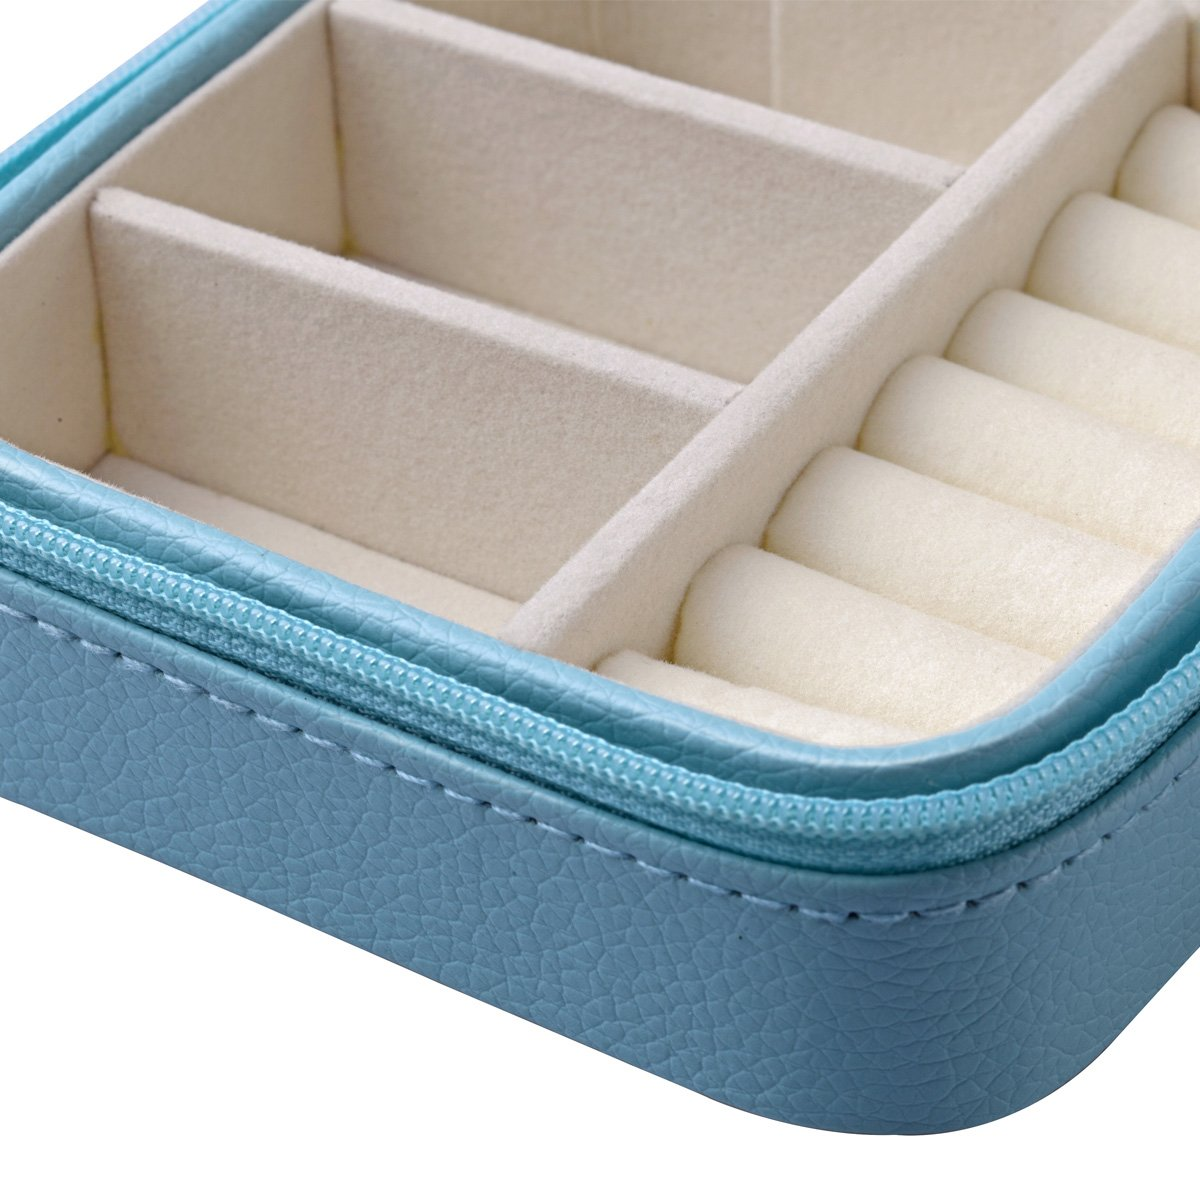 Vlando Small Faux Leather Travel Jewelry Box Organizer Display Storage Case for Rings Earrings Necklace (Blue) by Vlando (Image #4)